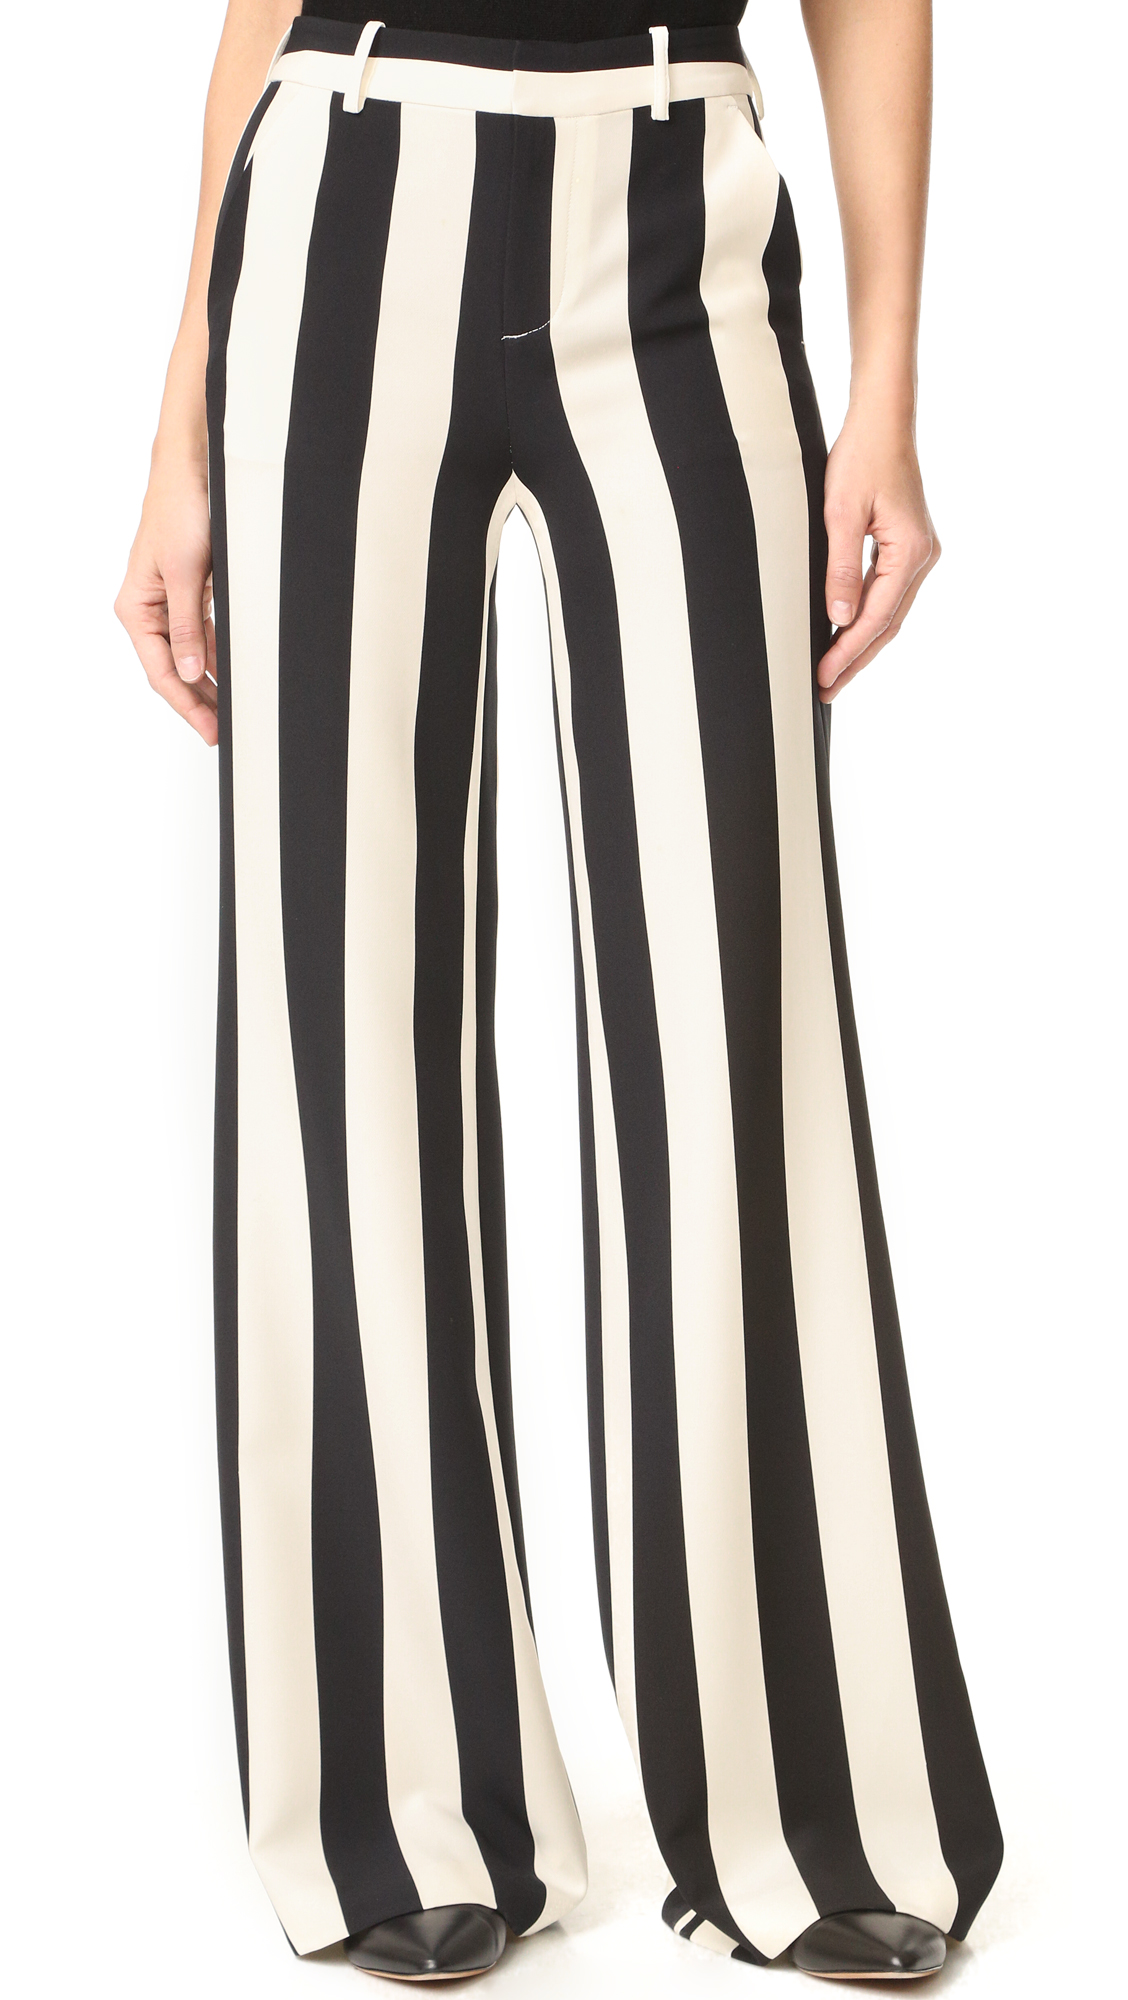 Wide, two tone stripes give these alice + olivia pants a bold, graphic look. High waisted, wide leg profile. Slant front pockets and welt back pockets. Hook and eye closure and zip fly. Fabric: Slinky crepe. 95% polyester/5%